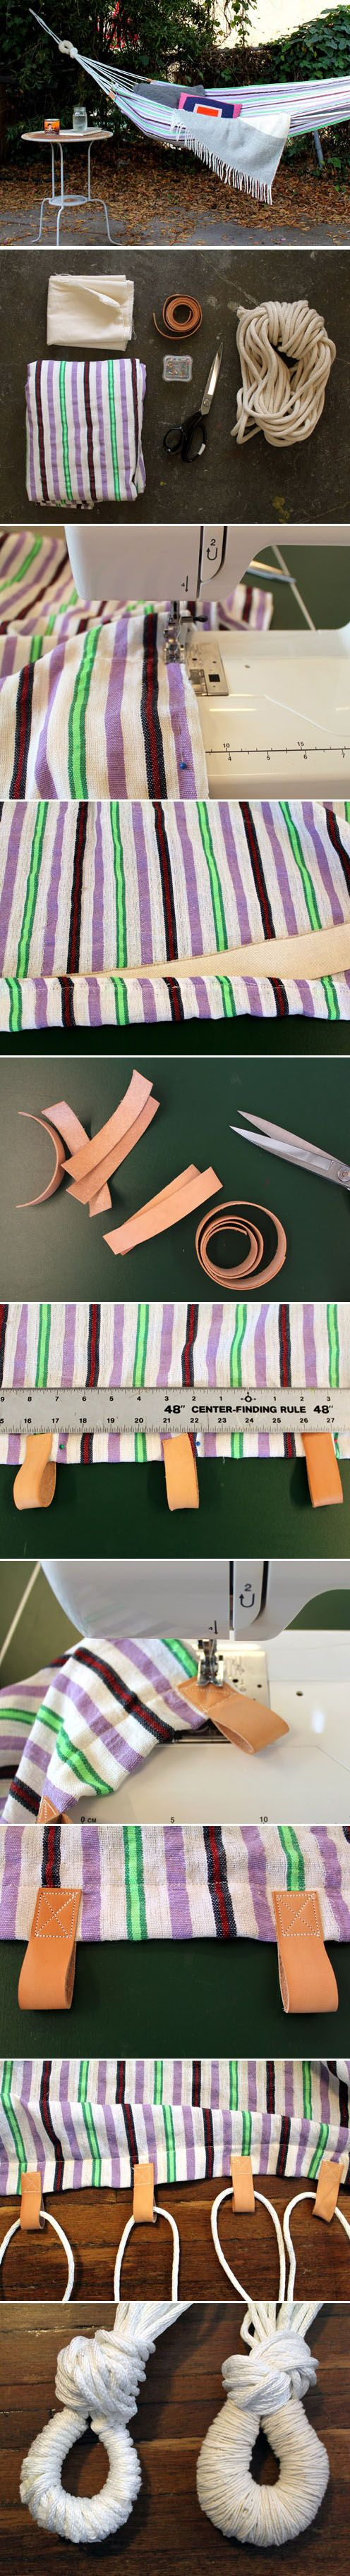 Dare I try this? I need a weight limit on my sewing lol!  Diy Easy Hammock   DIY  Crafts Tutorials